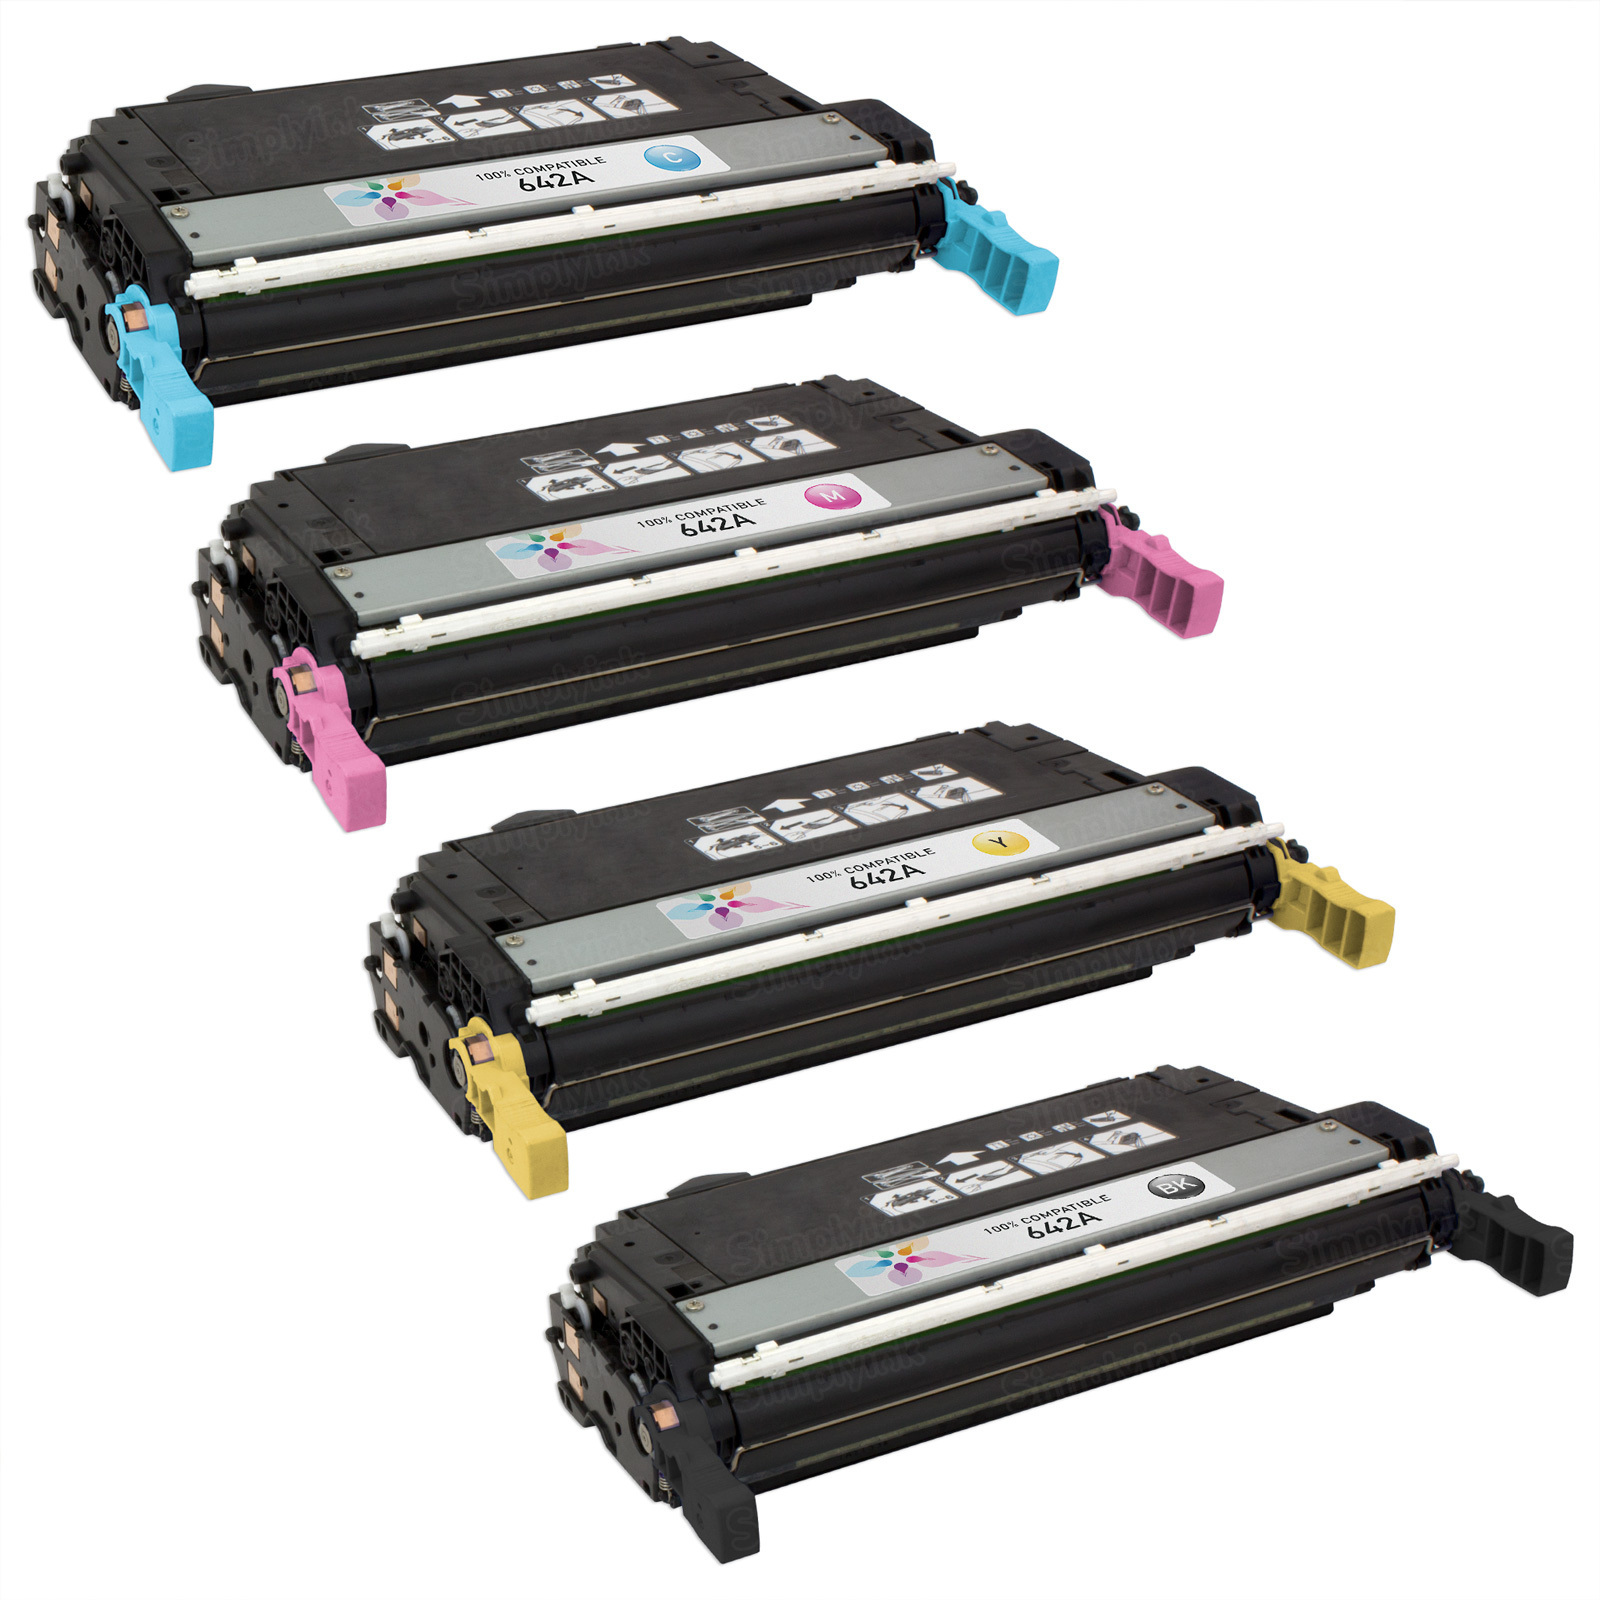 Remanufactured Replacement for HP 642A (Bk, C, M, Y) Set of 4 Toners